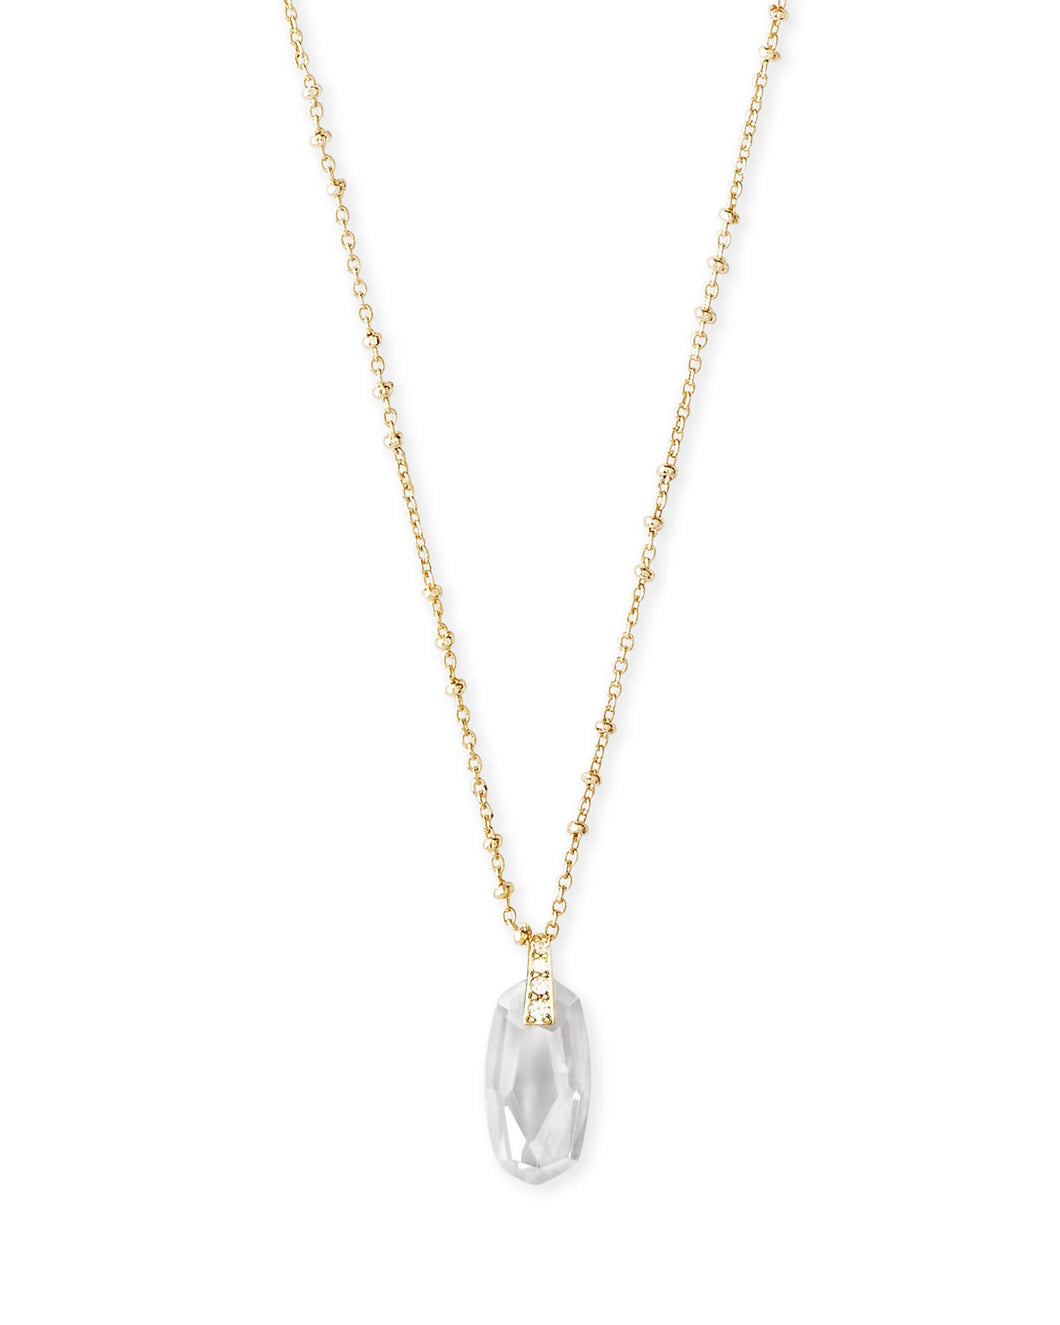 Camila Gold Pendant Necklace-Lustre Glass